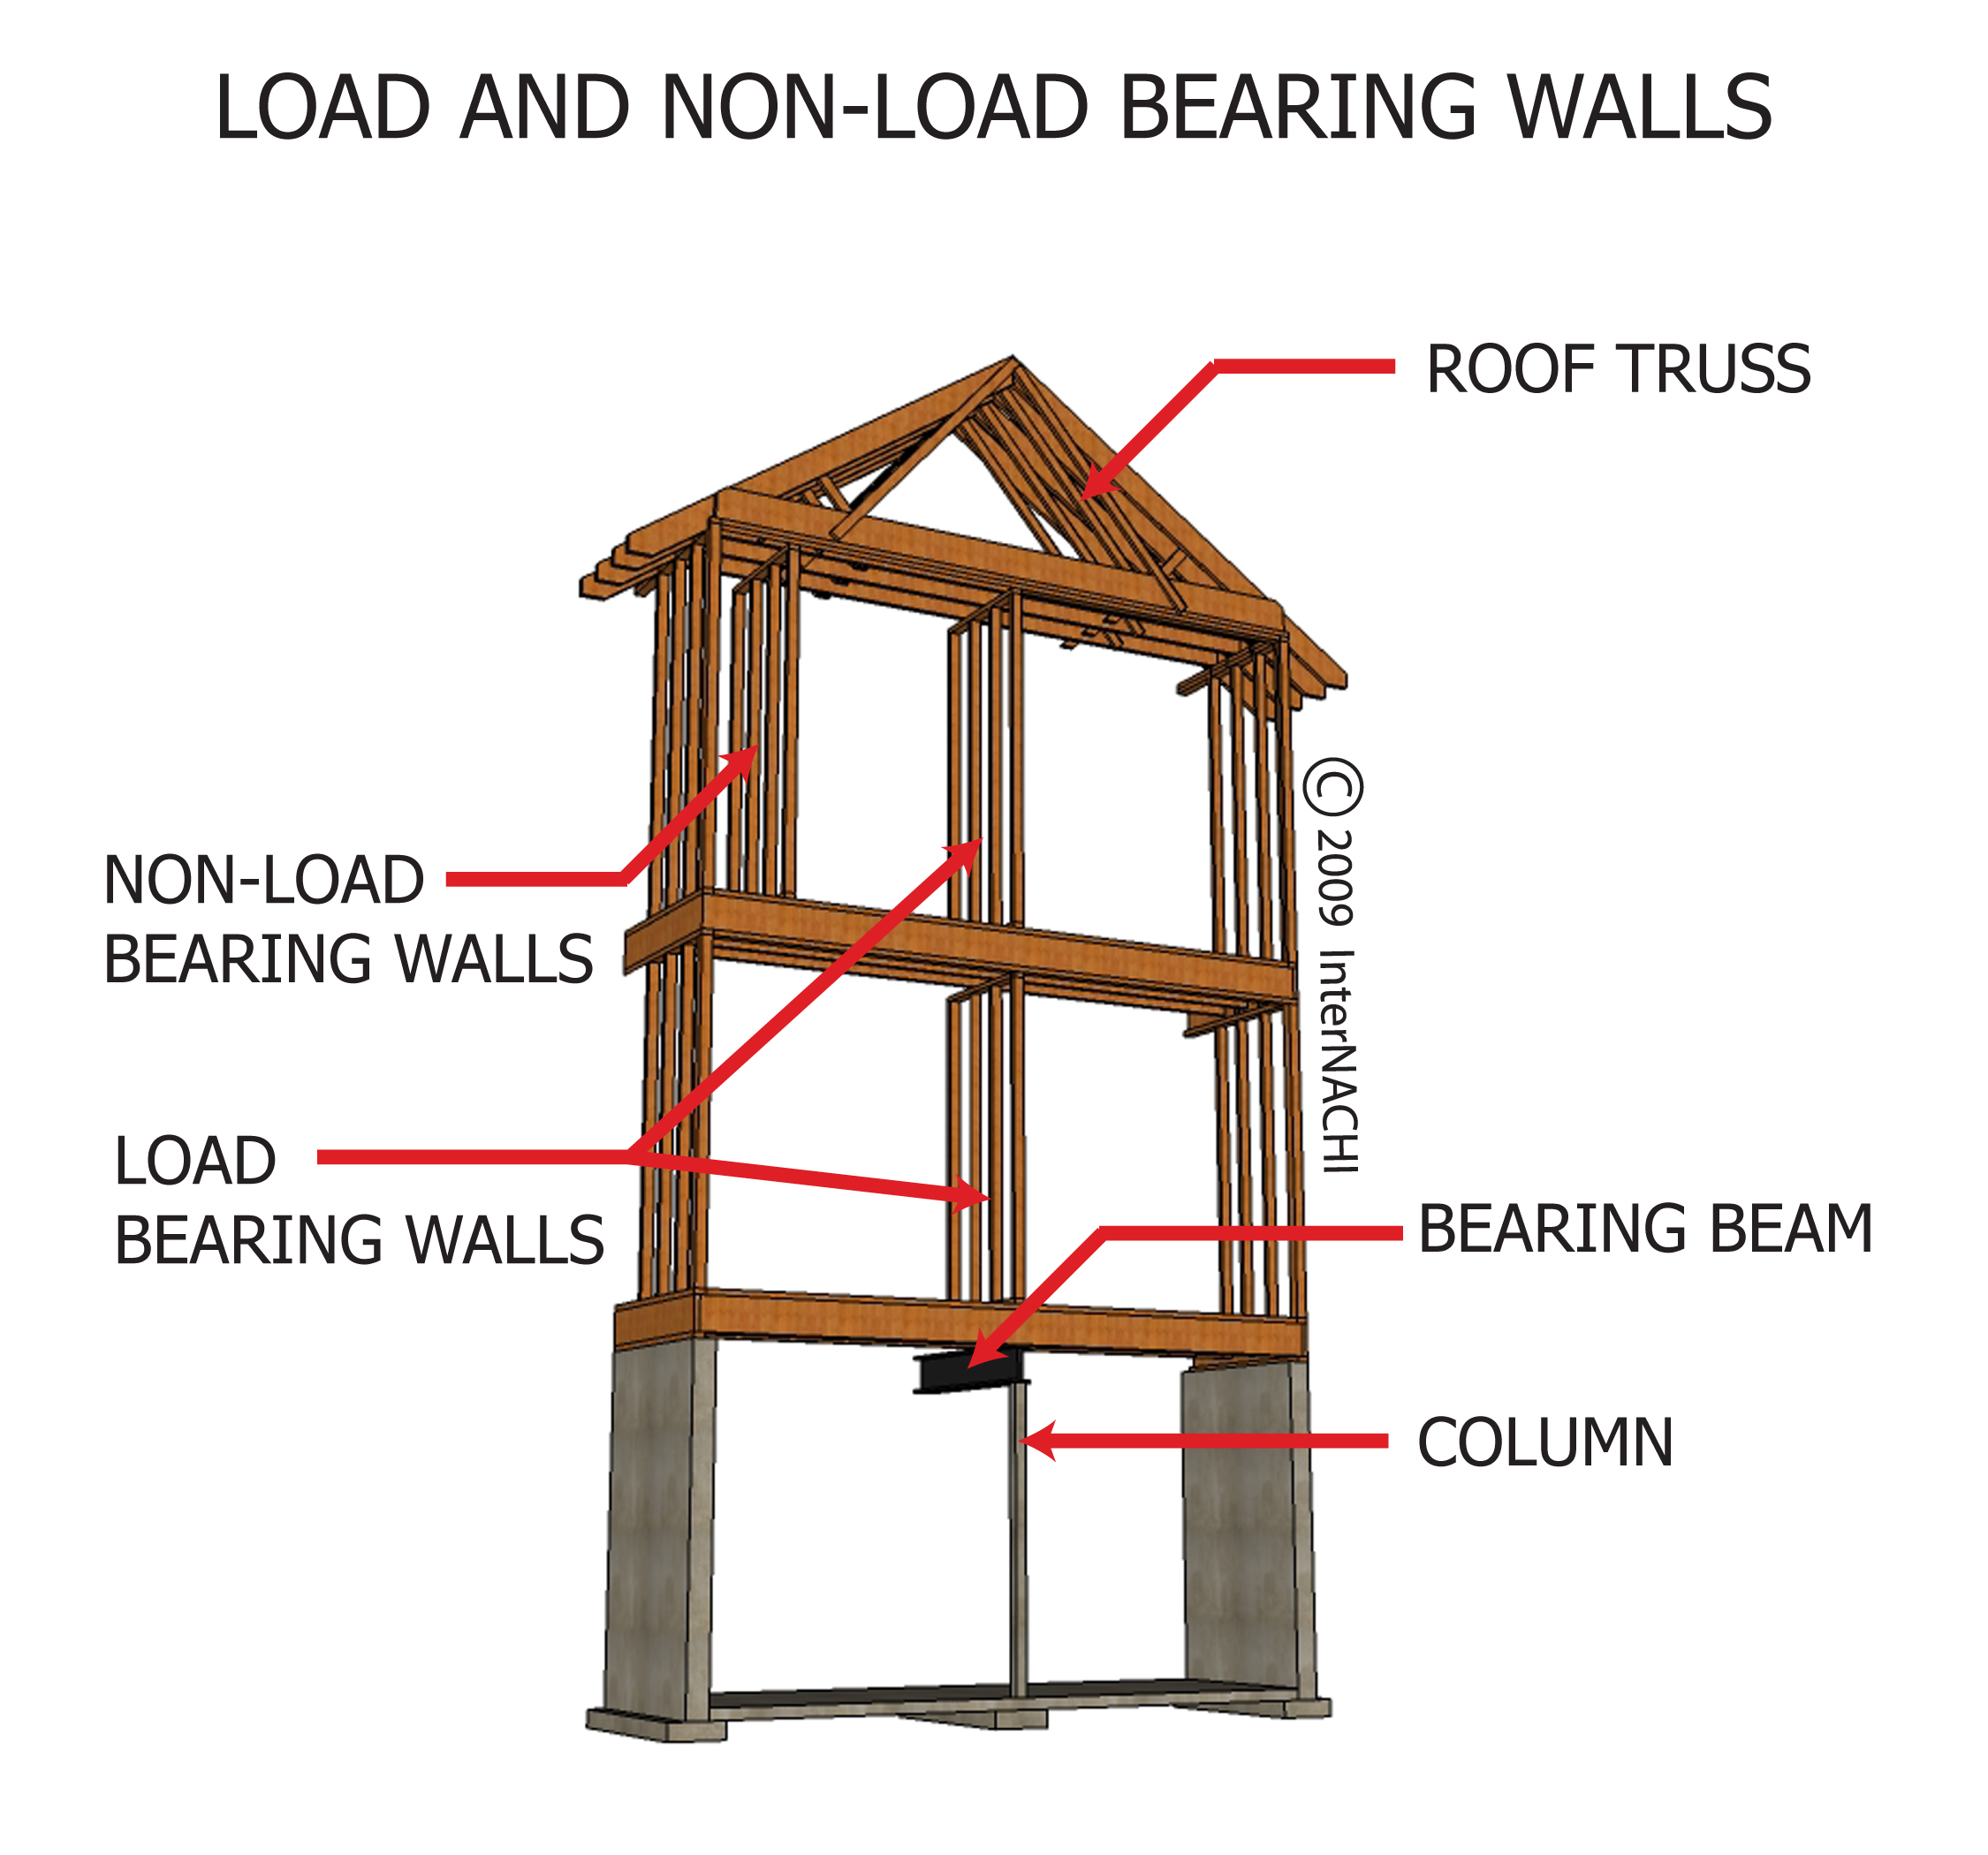 Load Bearing Wall : Rosamoreno licensed for non commercial use only